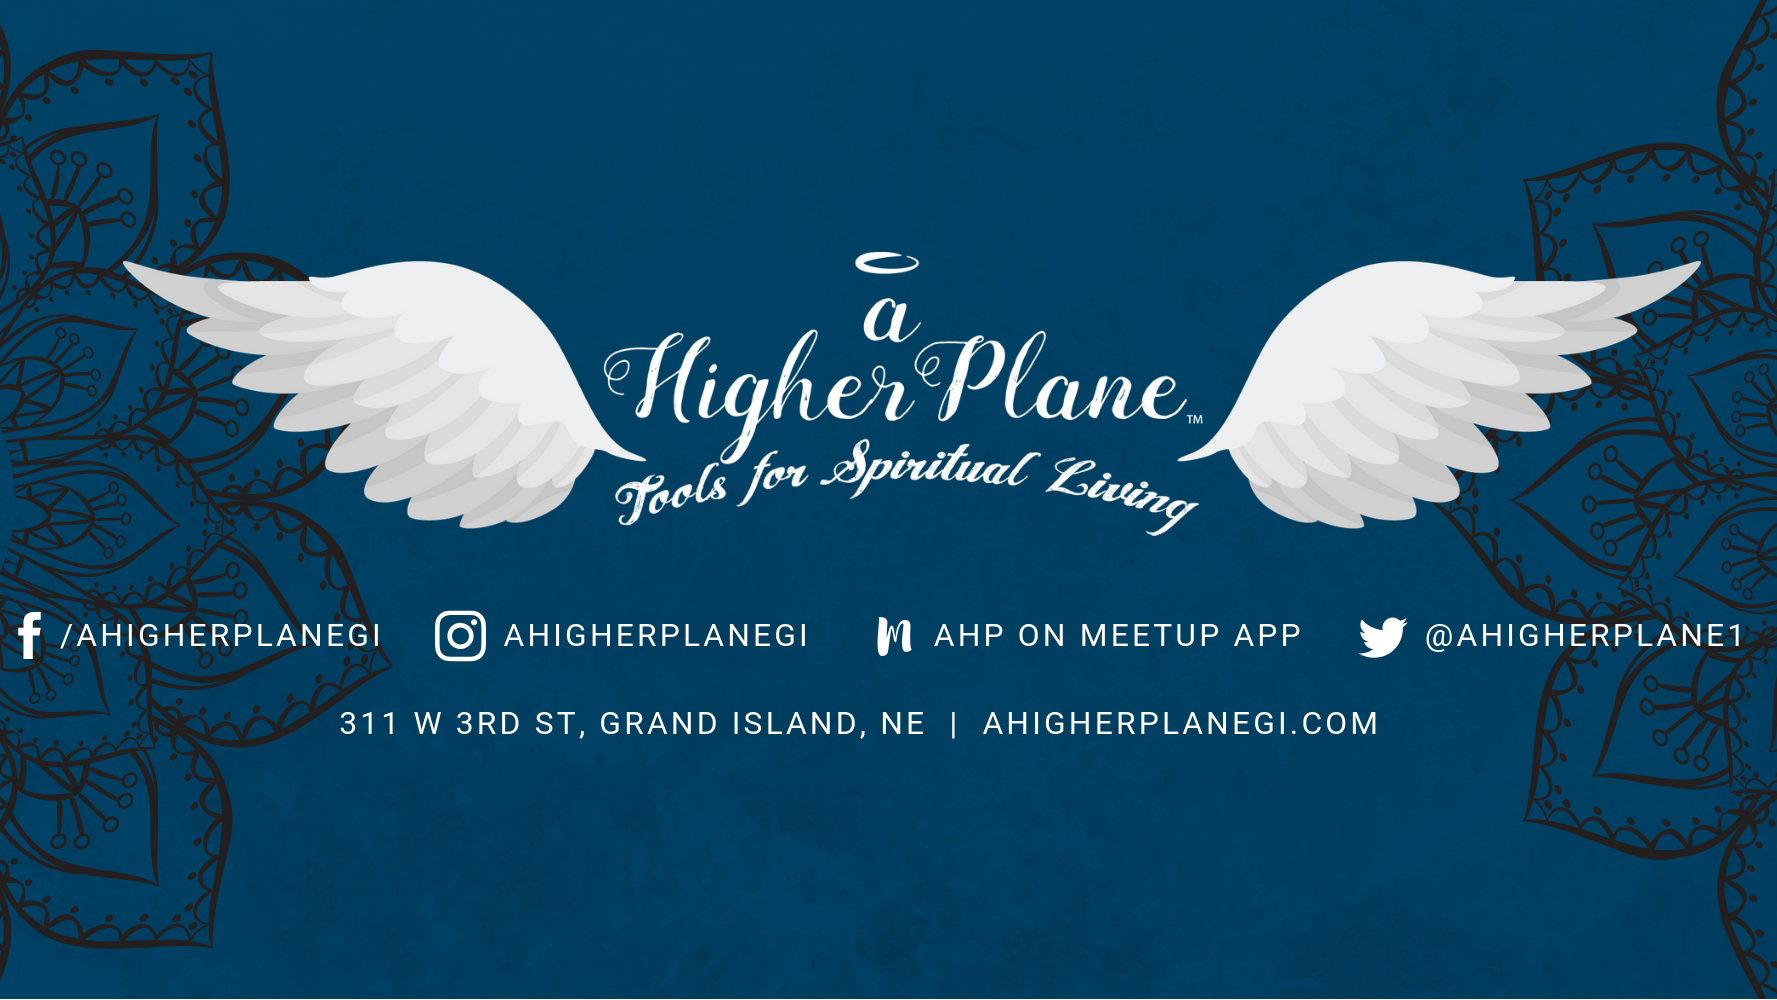 A Higher Plane-Tools for Spiritual Living